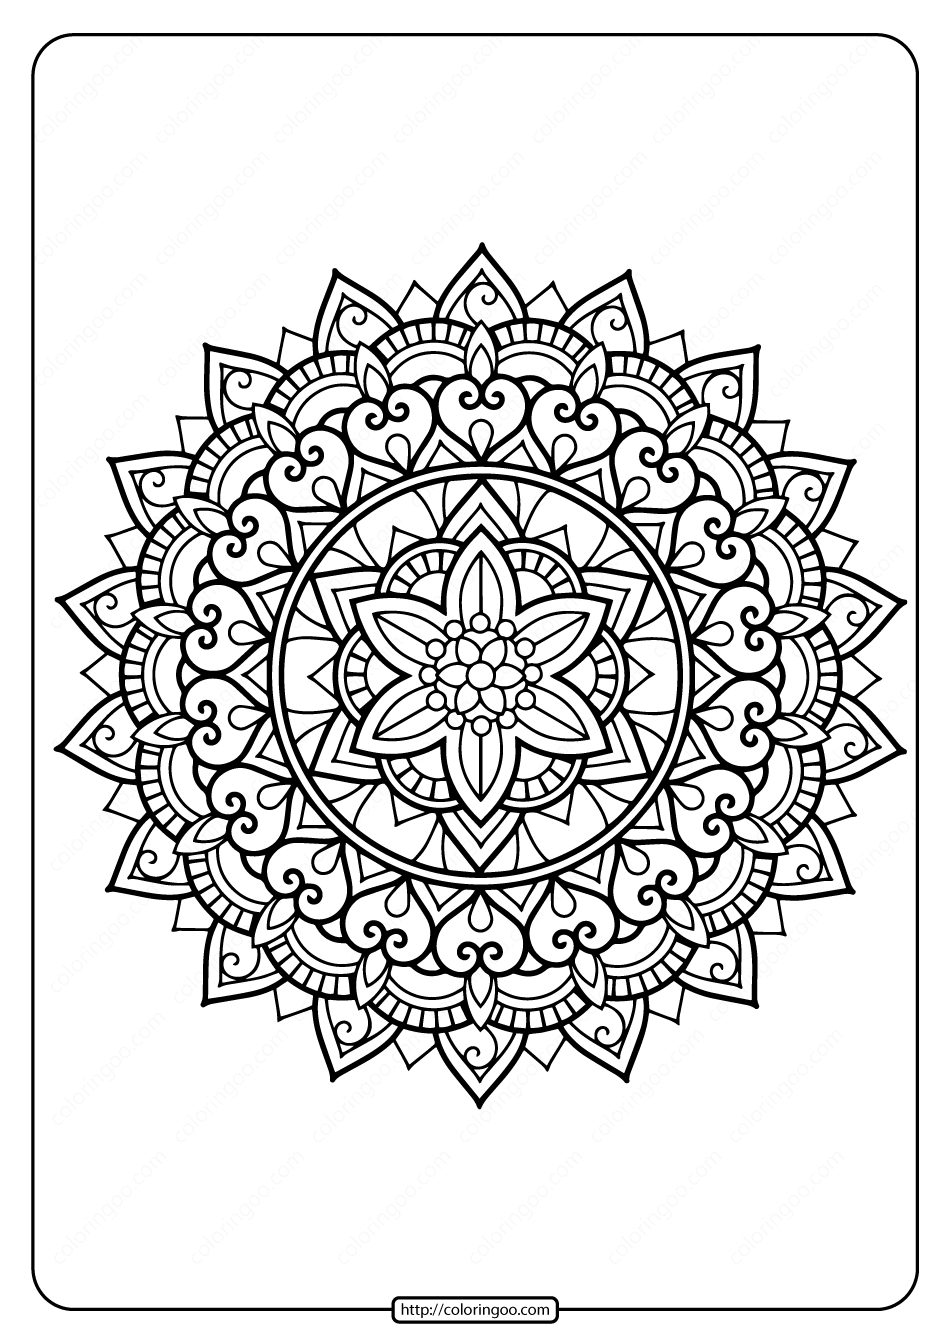 https://coloringoo.com/wp-content/uploads/2020/03/adult-coloring-pages-book-35.pdf